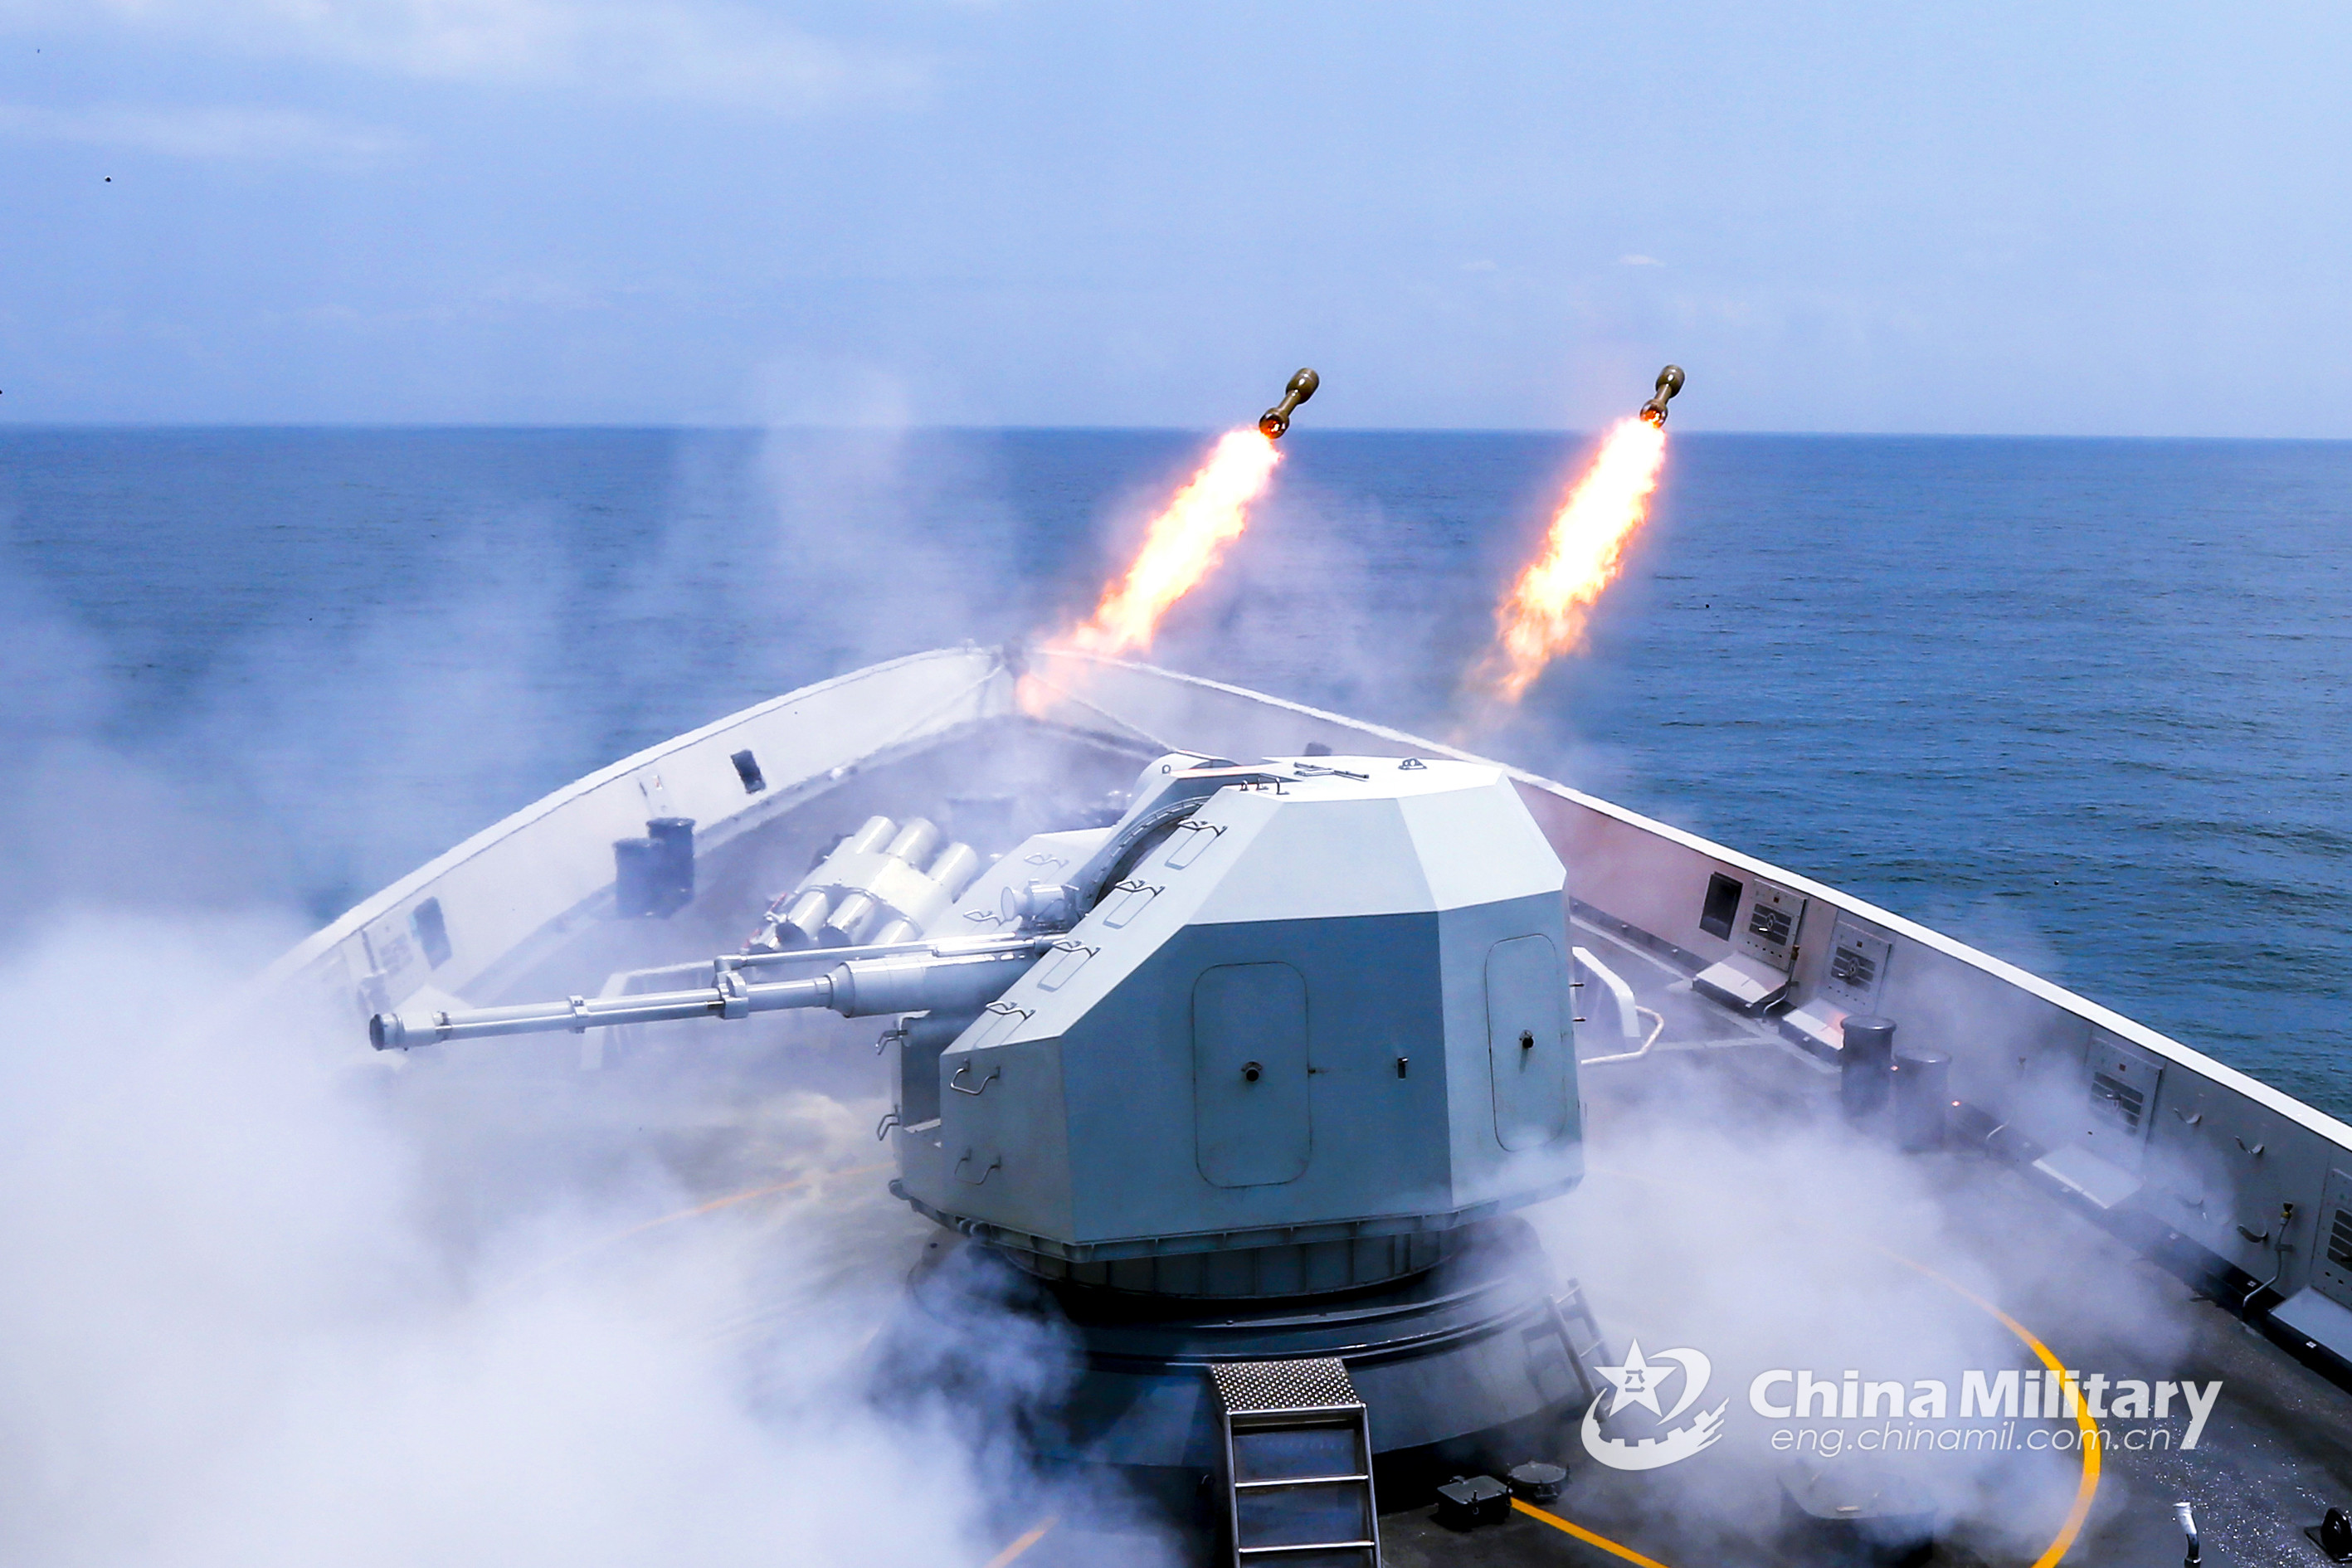 Chinese PLA Navy executes new naval drills in the Pacific as US aircraft carriers suffer from COVID-19 outbreak